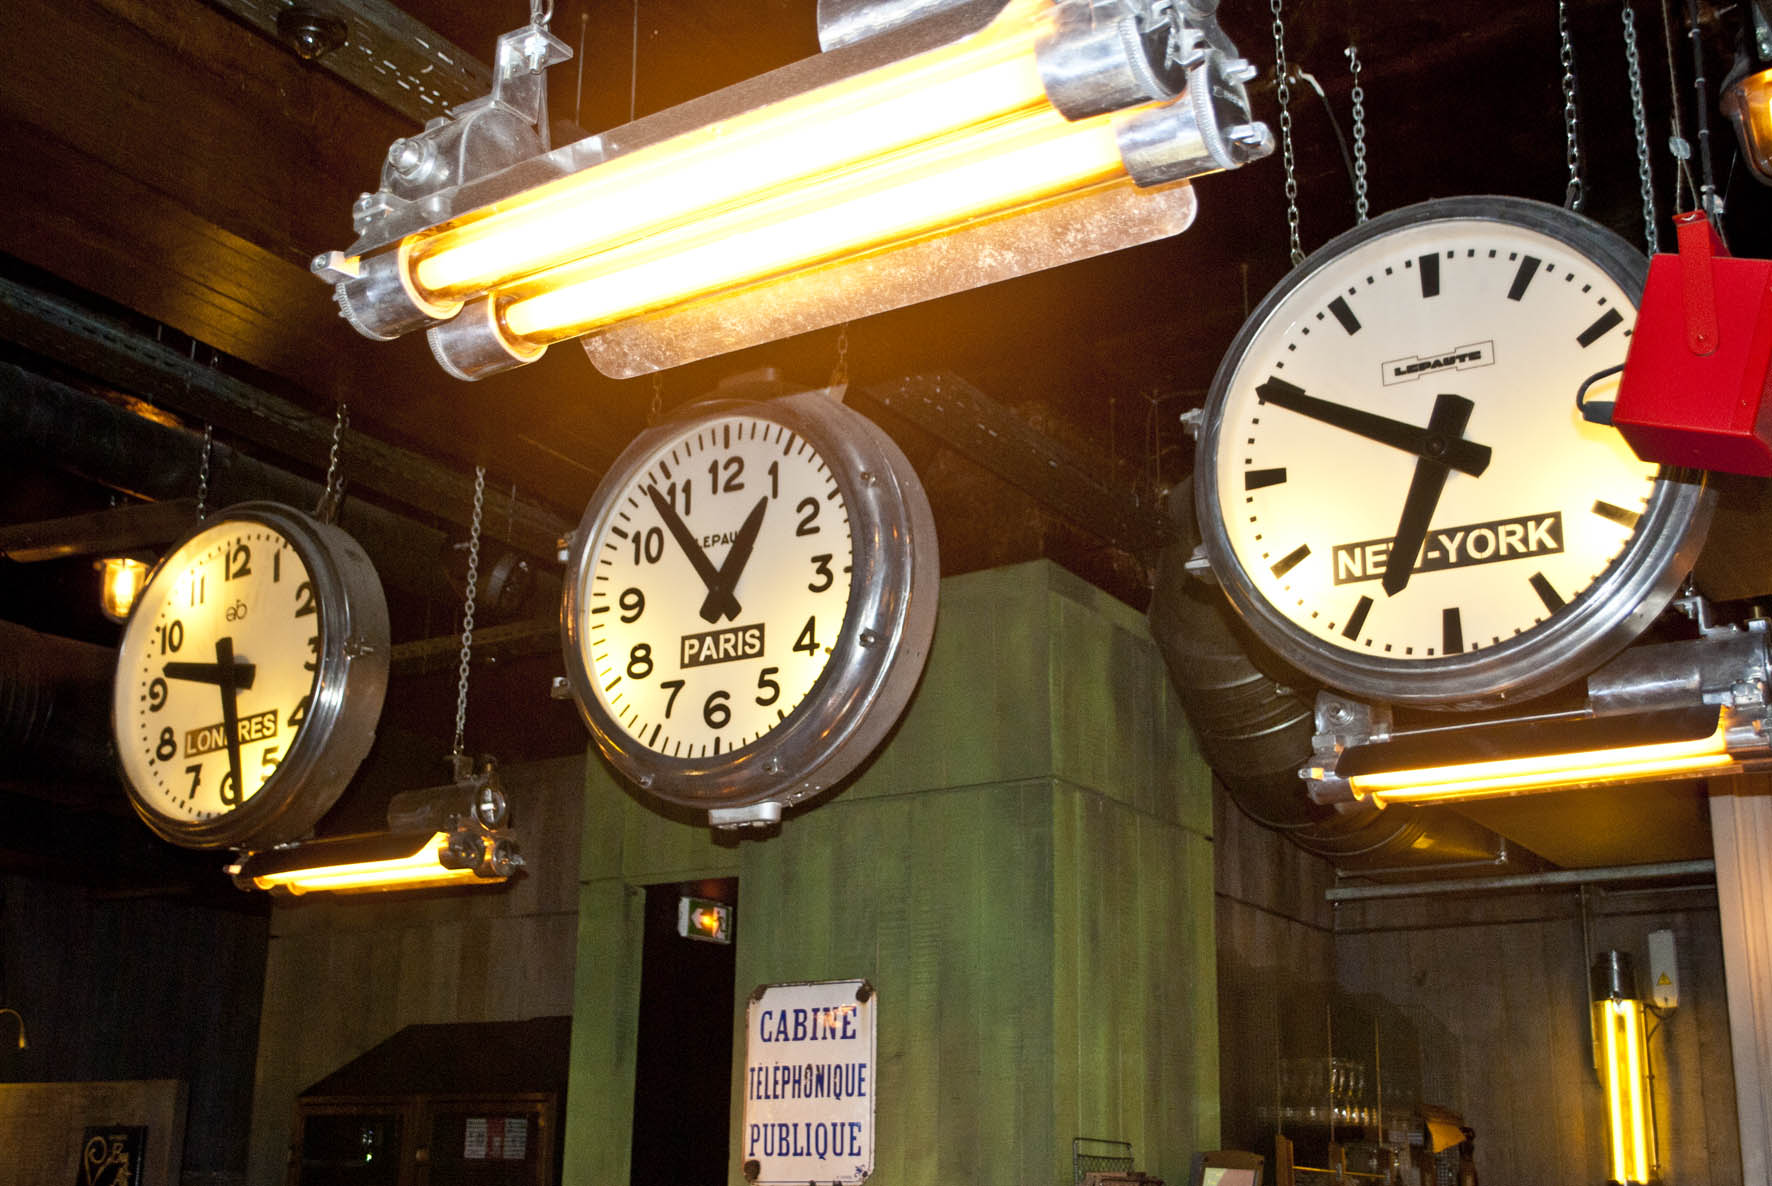 These three fabulous reclaimed timezone clocks create an eye-catching focal point in the restaurant.